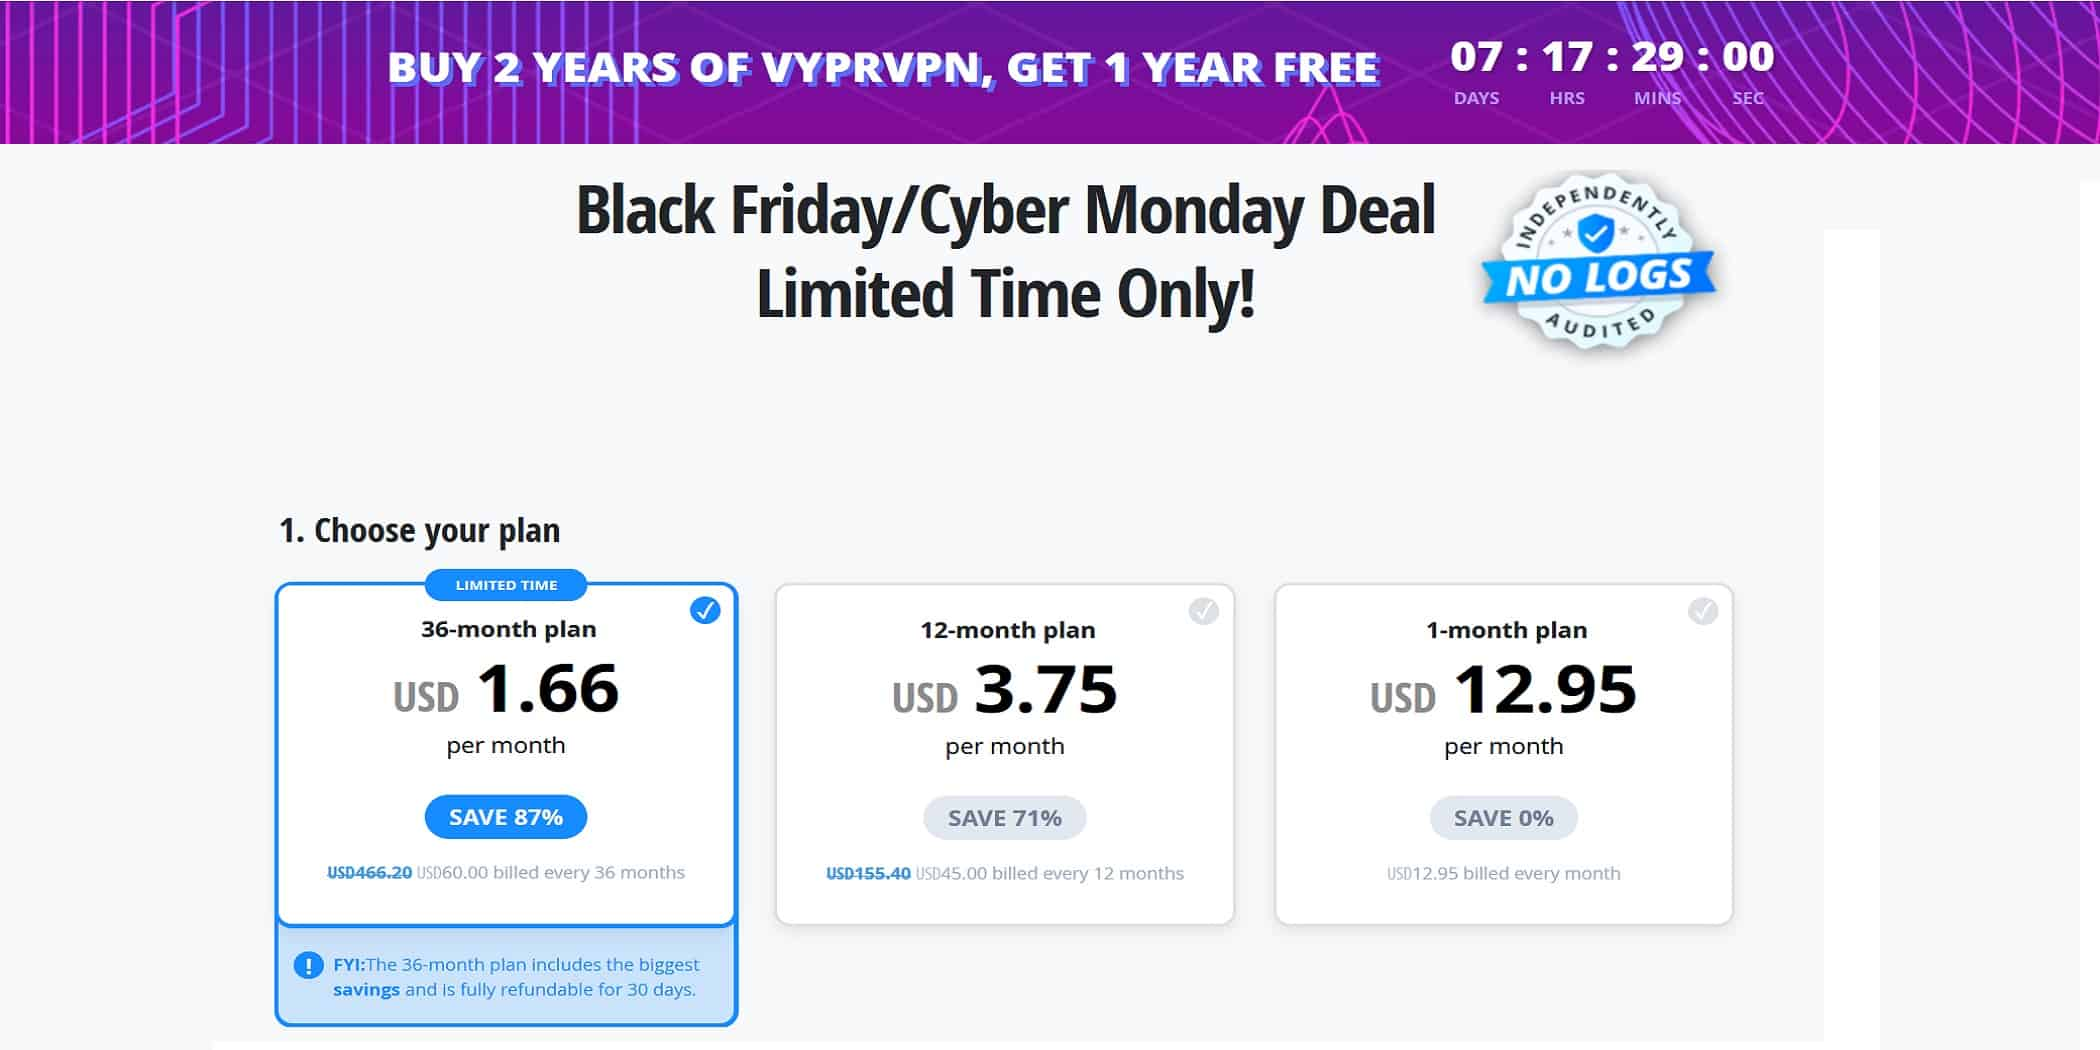 Black friday VyprVPN deal